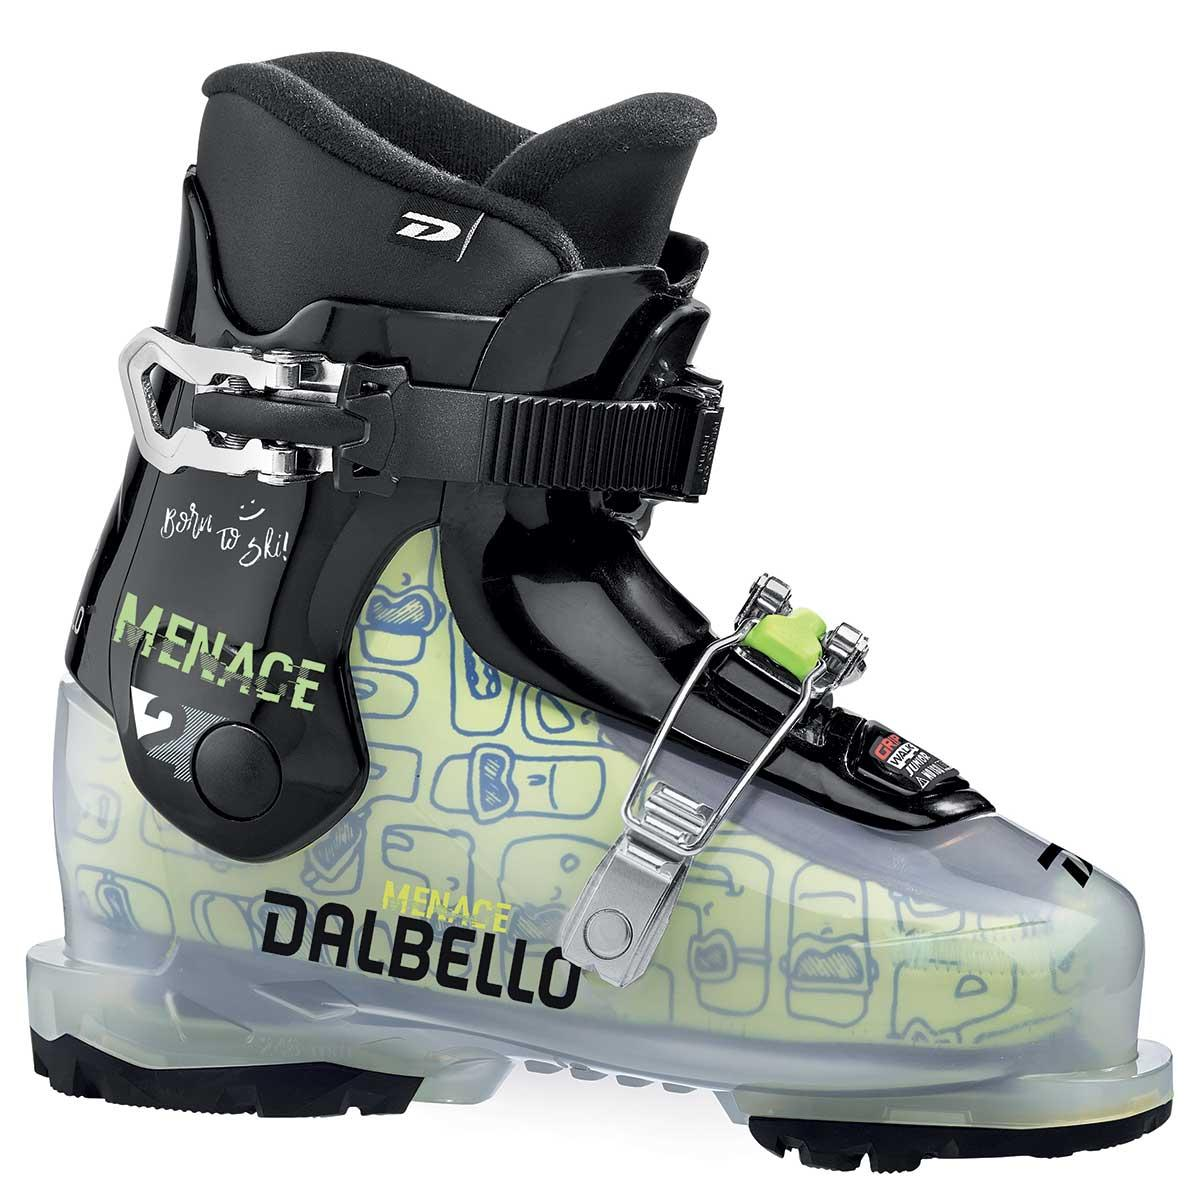 Dalbello Menace 2 junior ski boot in trans black